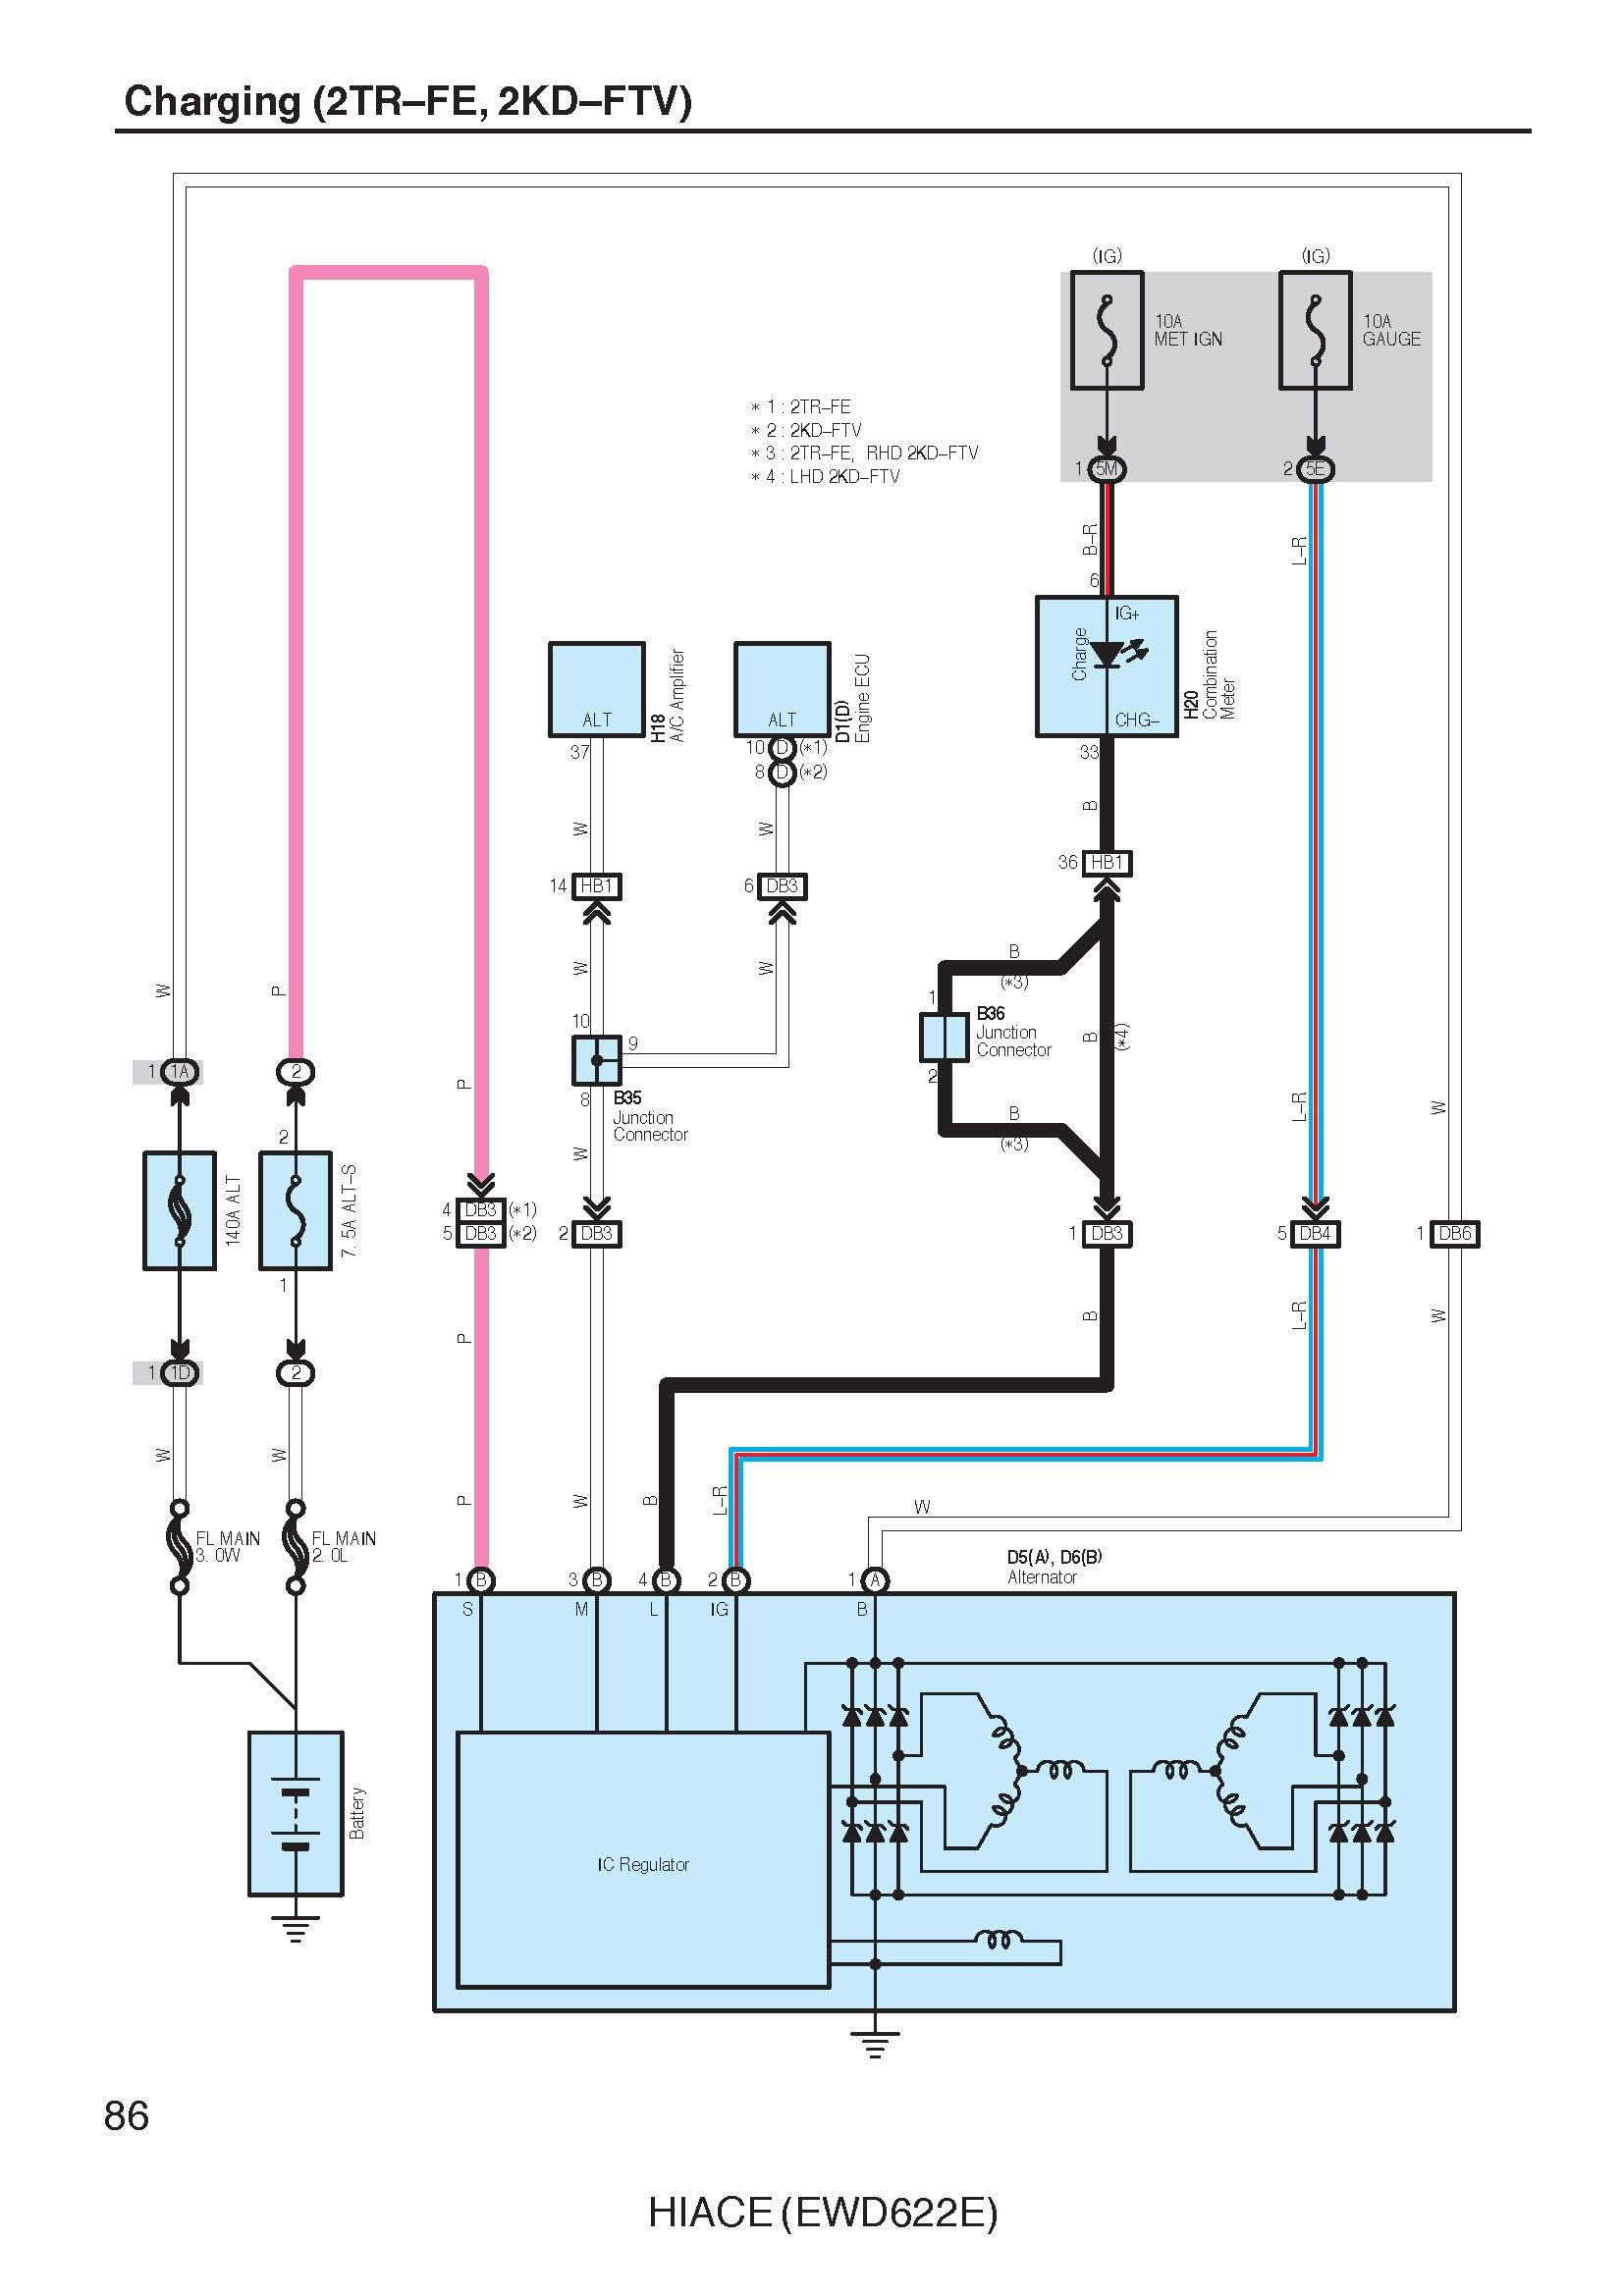 2006 Toyota Hiace Original And Coloured Electrical Wiring Diagram Pdf This Manual Is Used In The Insp Electrical Wiring Electrical Wiring Diagram Toyota Hiace